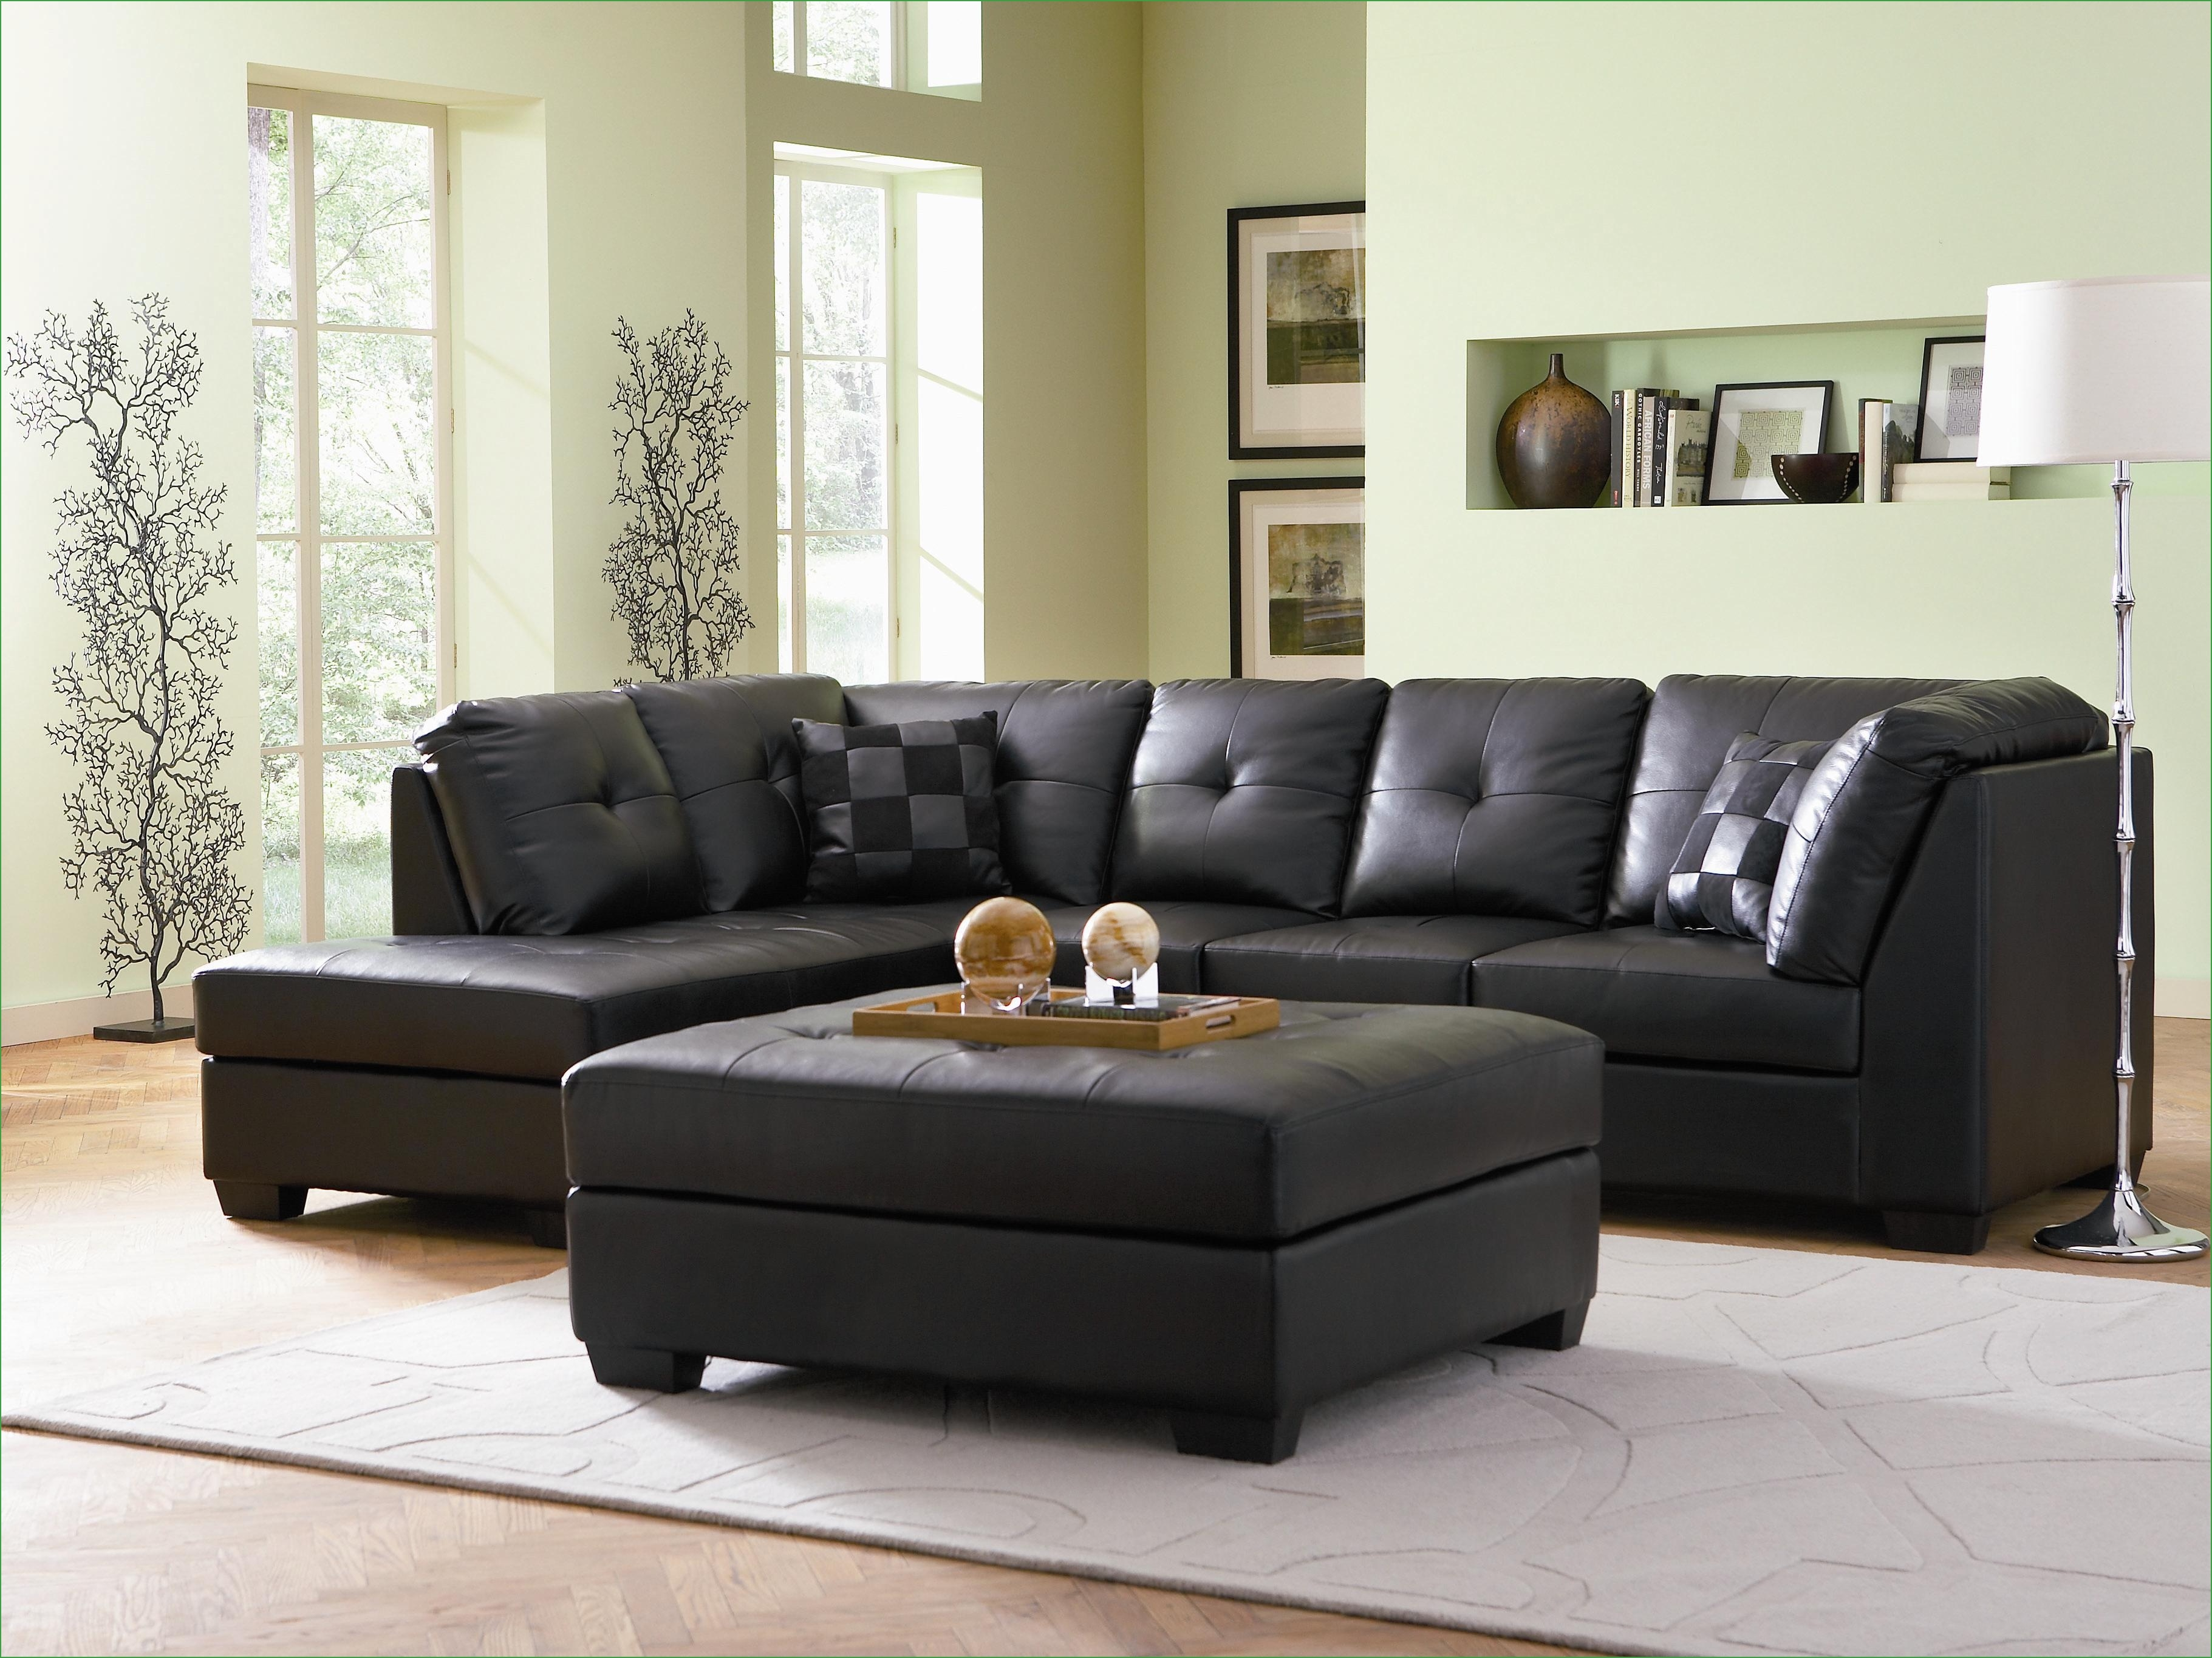 Barton 3 Piece Power Reclining Sectional Camel One80 Camel Throughout Camel Colored Sectional Sofa (Image 4 of 15)